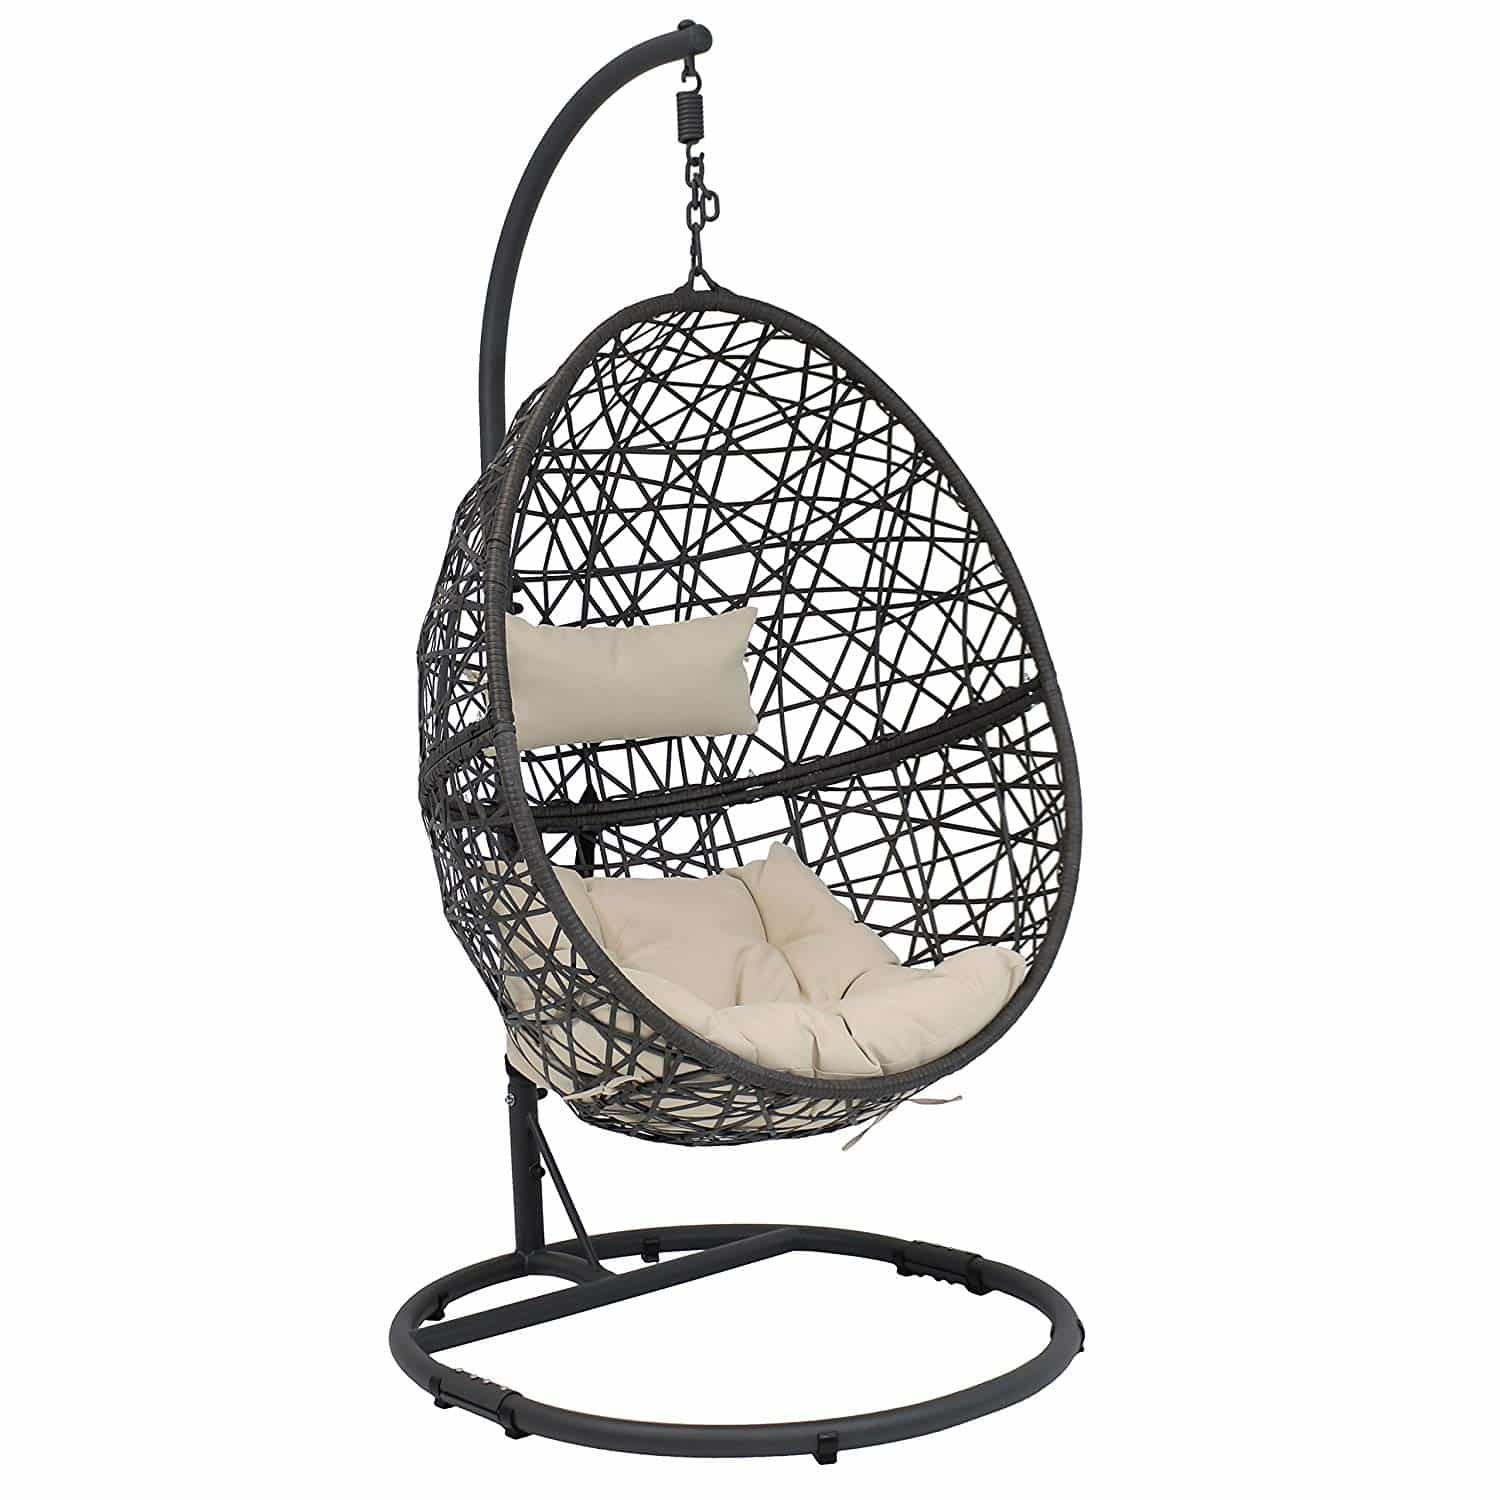 10 Best Egg Chairs Of 2020 (Review & Guide) – Thebeastreviews Pertaining To Outdoor Wicker Plastic Tear Porch Swings With Stand (View 20 of 25)